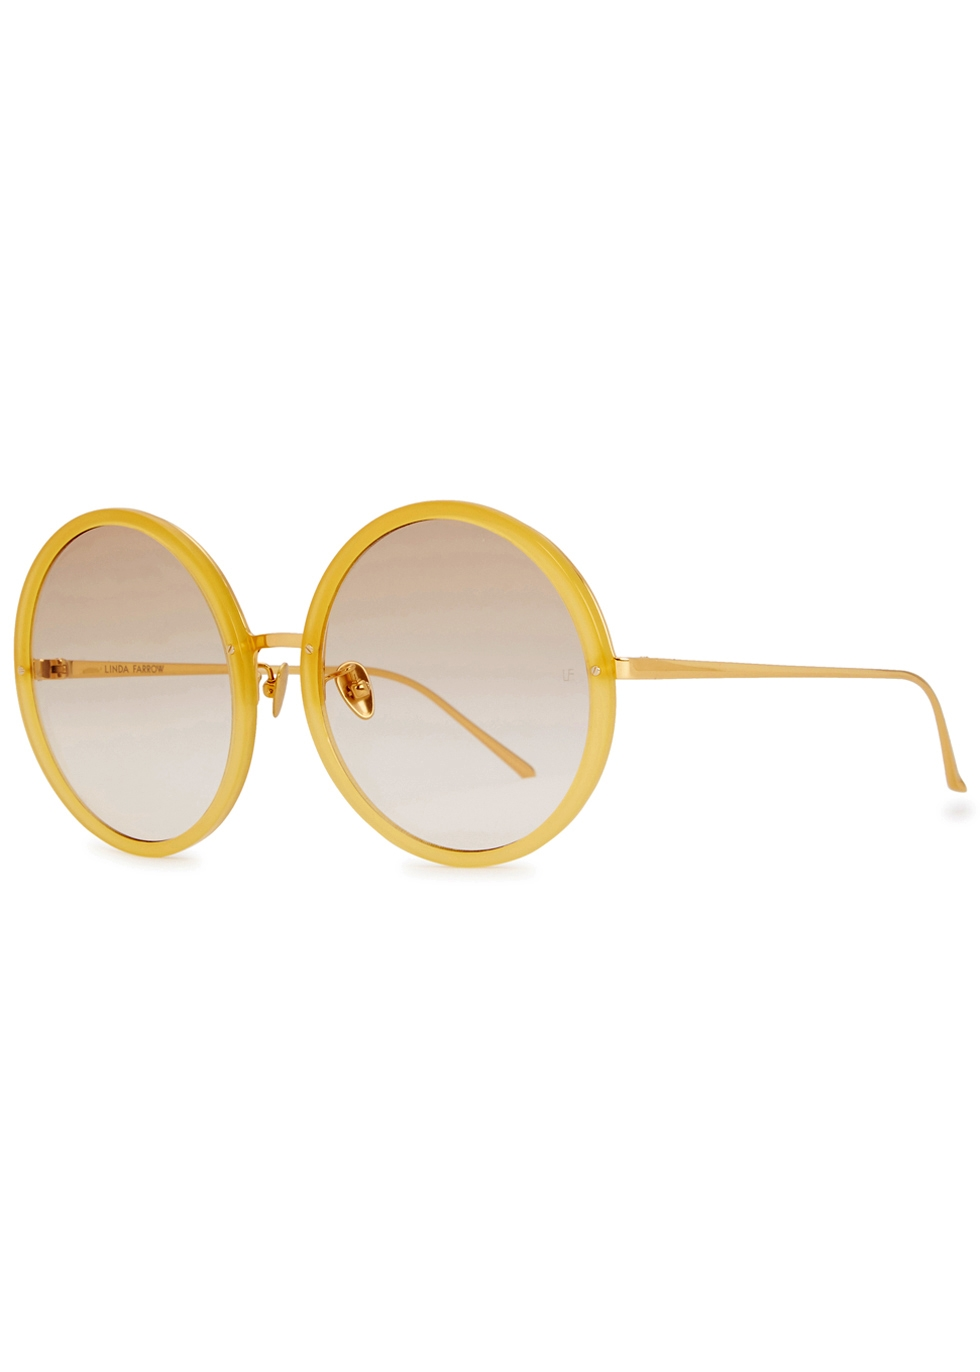 LINDA FARROW LUXE 457 18CT GOLD-PLATED OVERSIZED SUNGLASSES